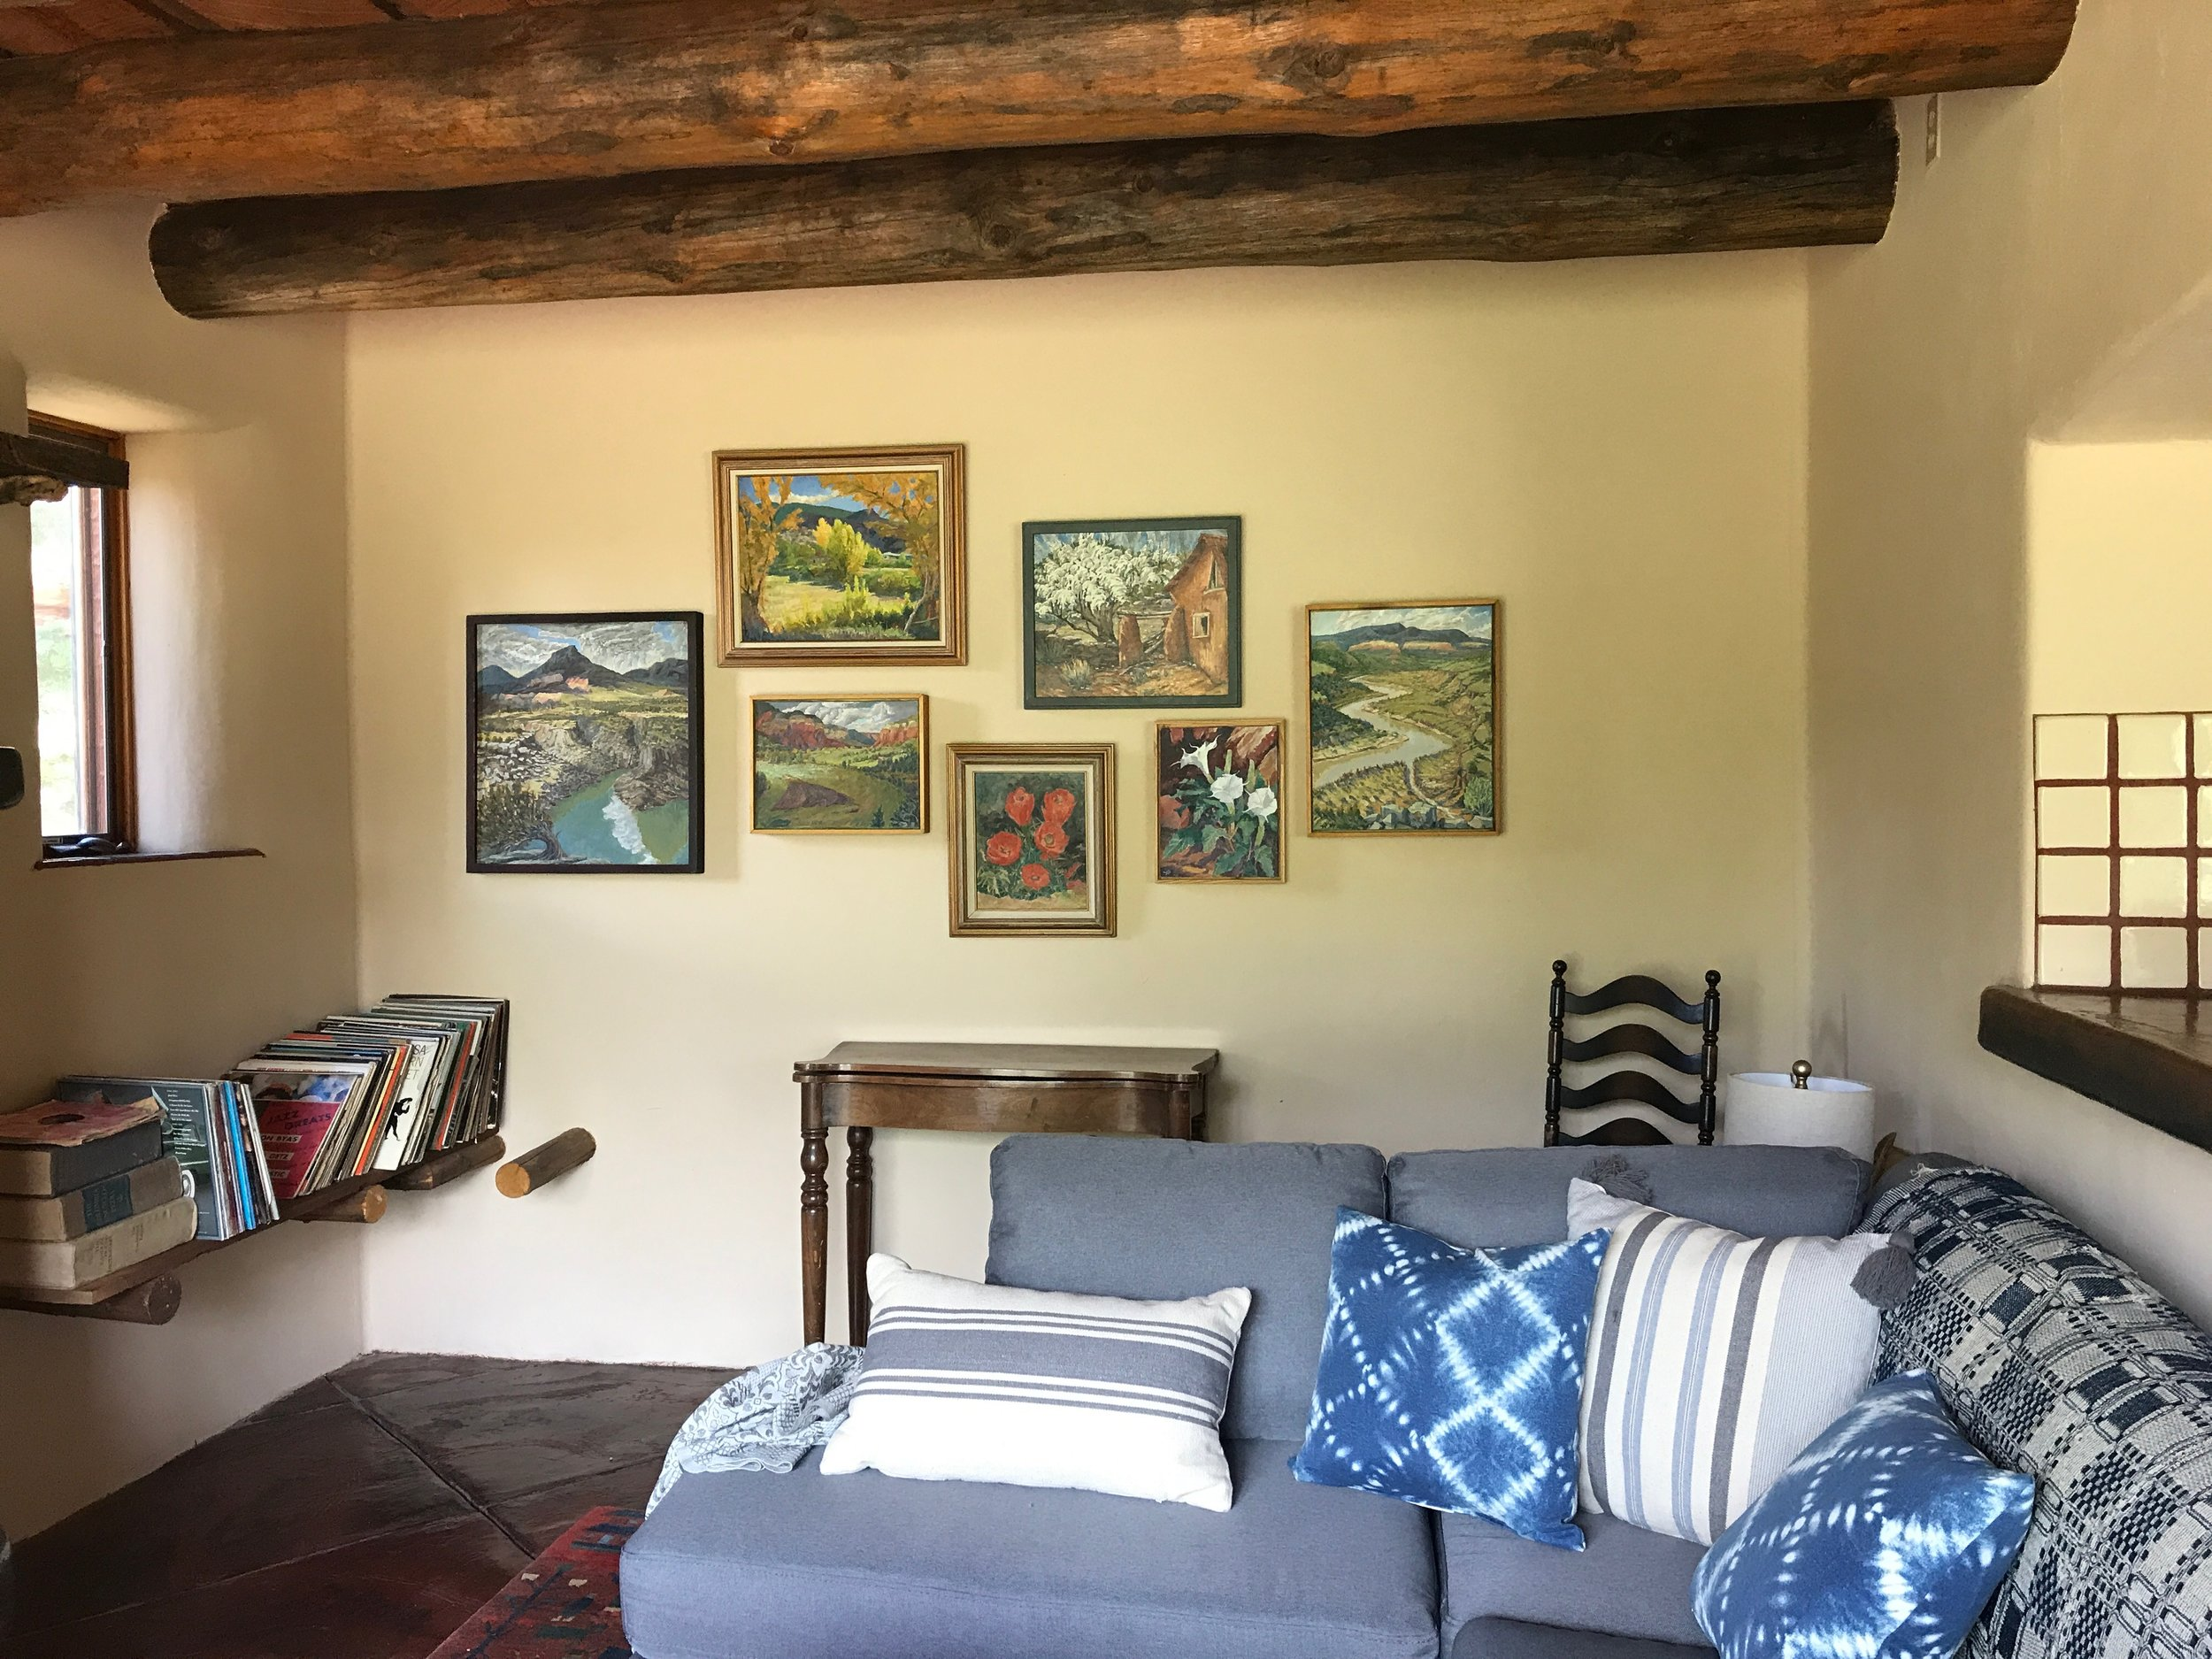 Hanging Don Roach original oil paintings in the Adobe, 2019.